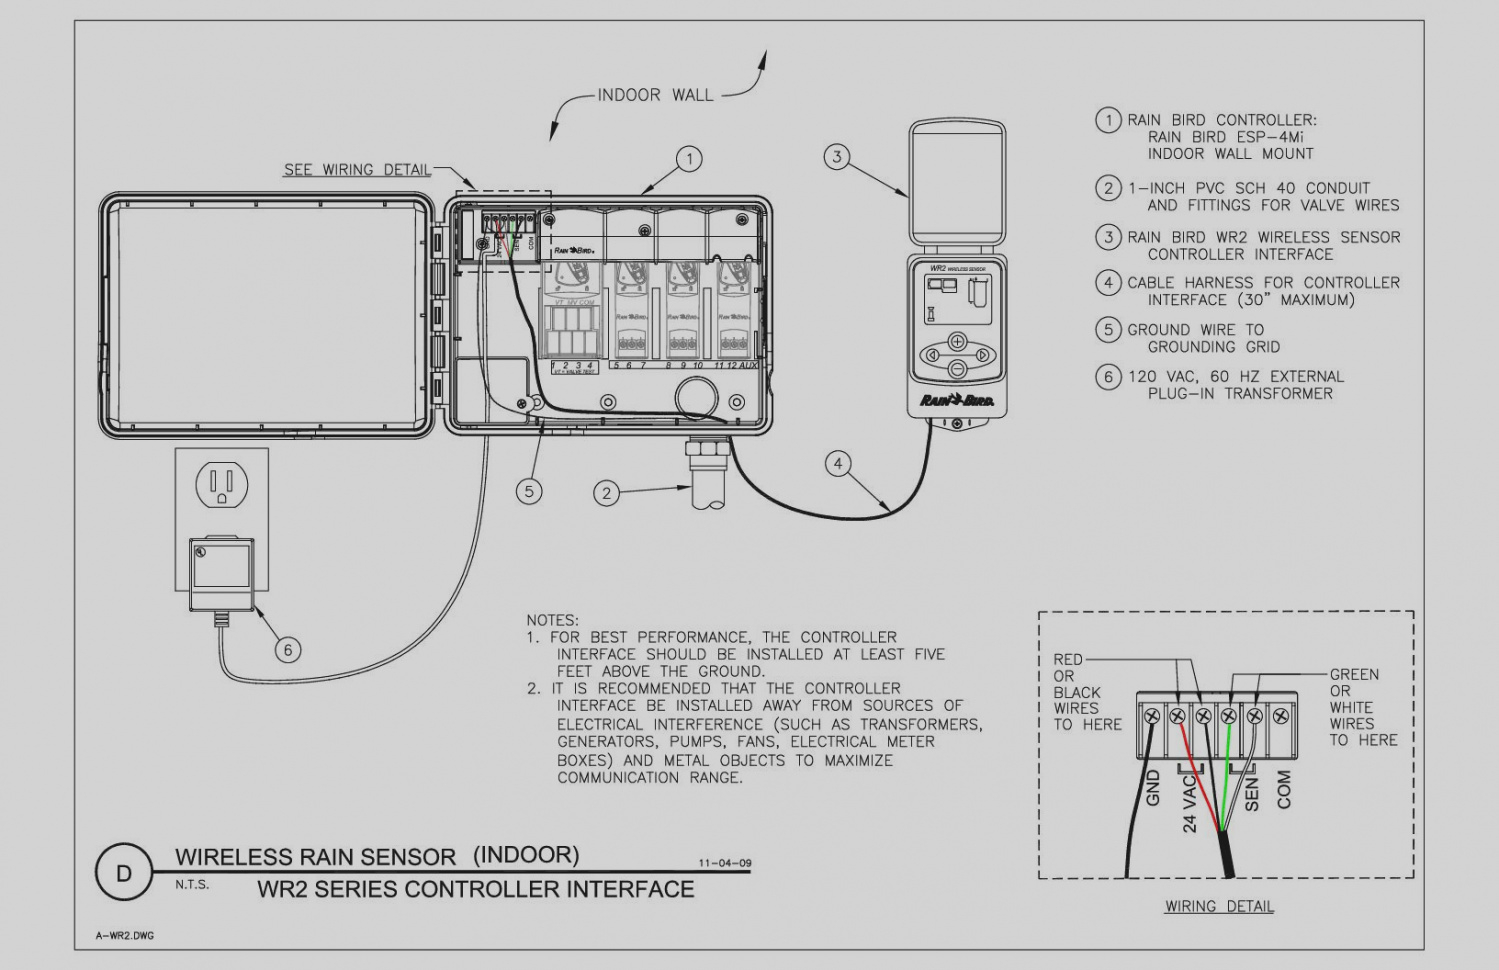 Caleffi Zone Valve Wiring Diagram Online Schematics A V8043e1012 For Multiple Valves Schematic Diagrams Z151000